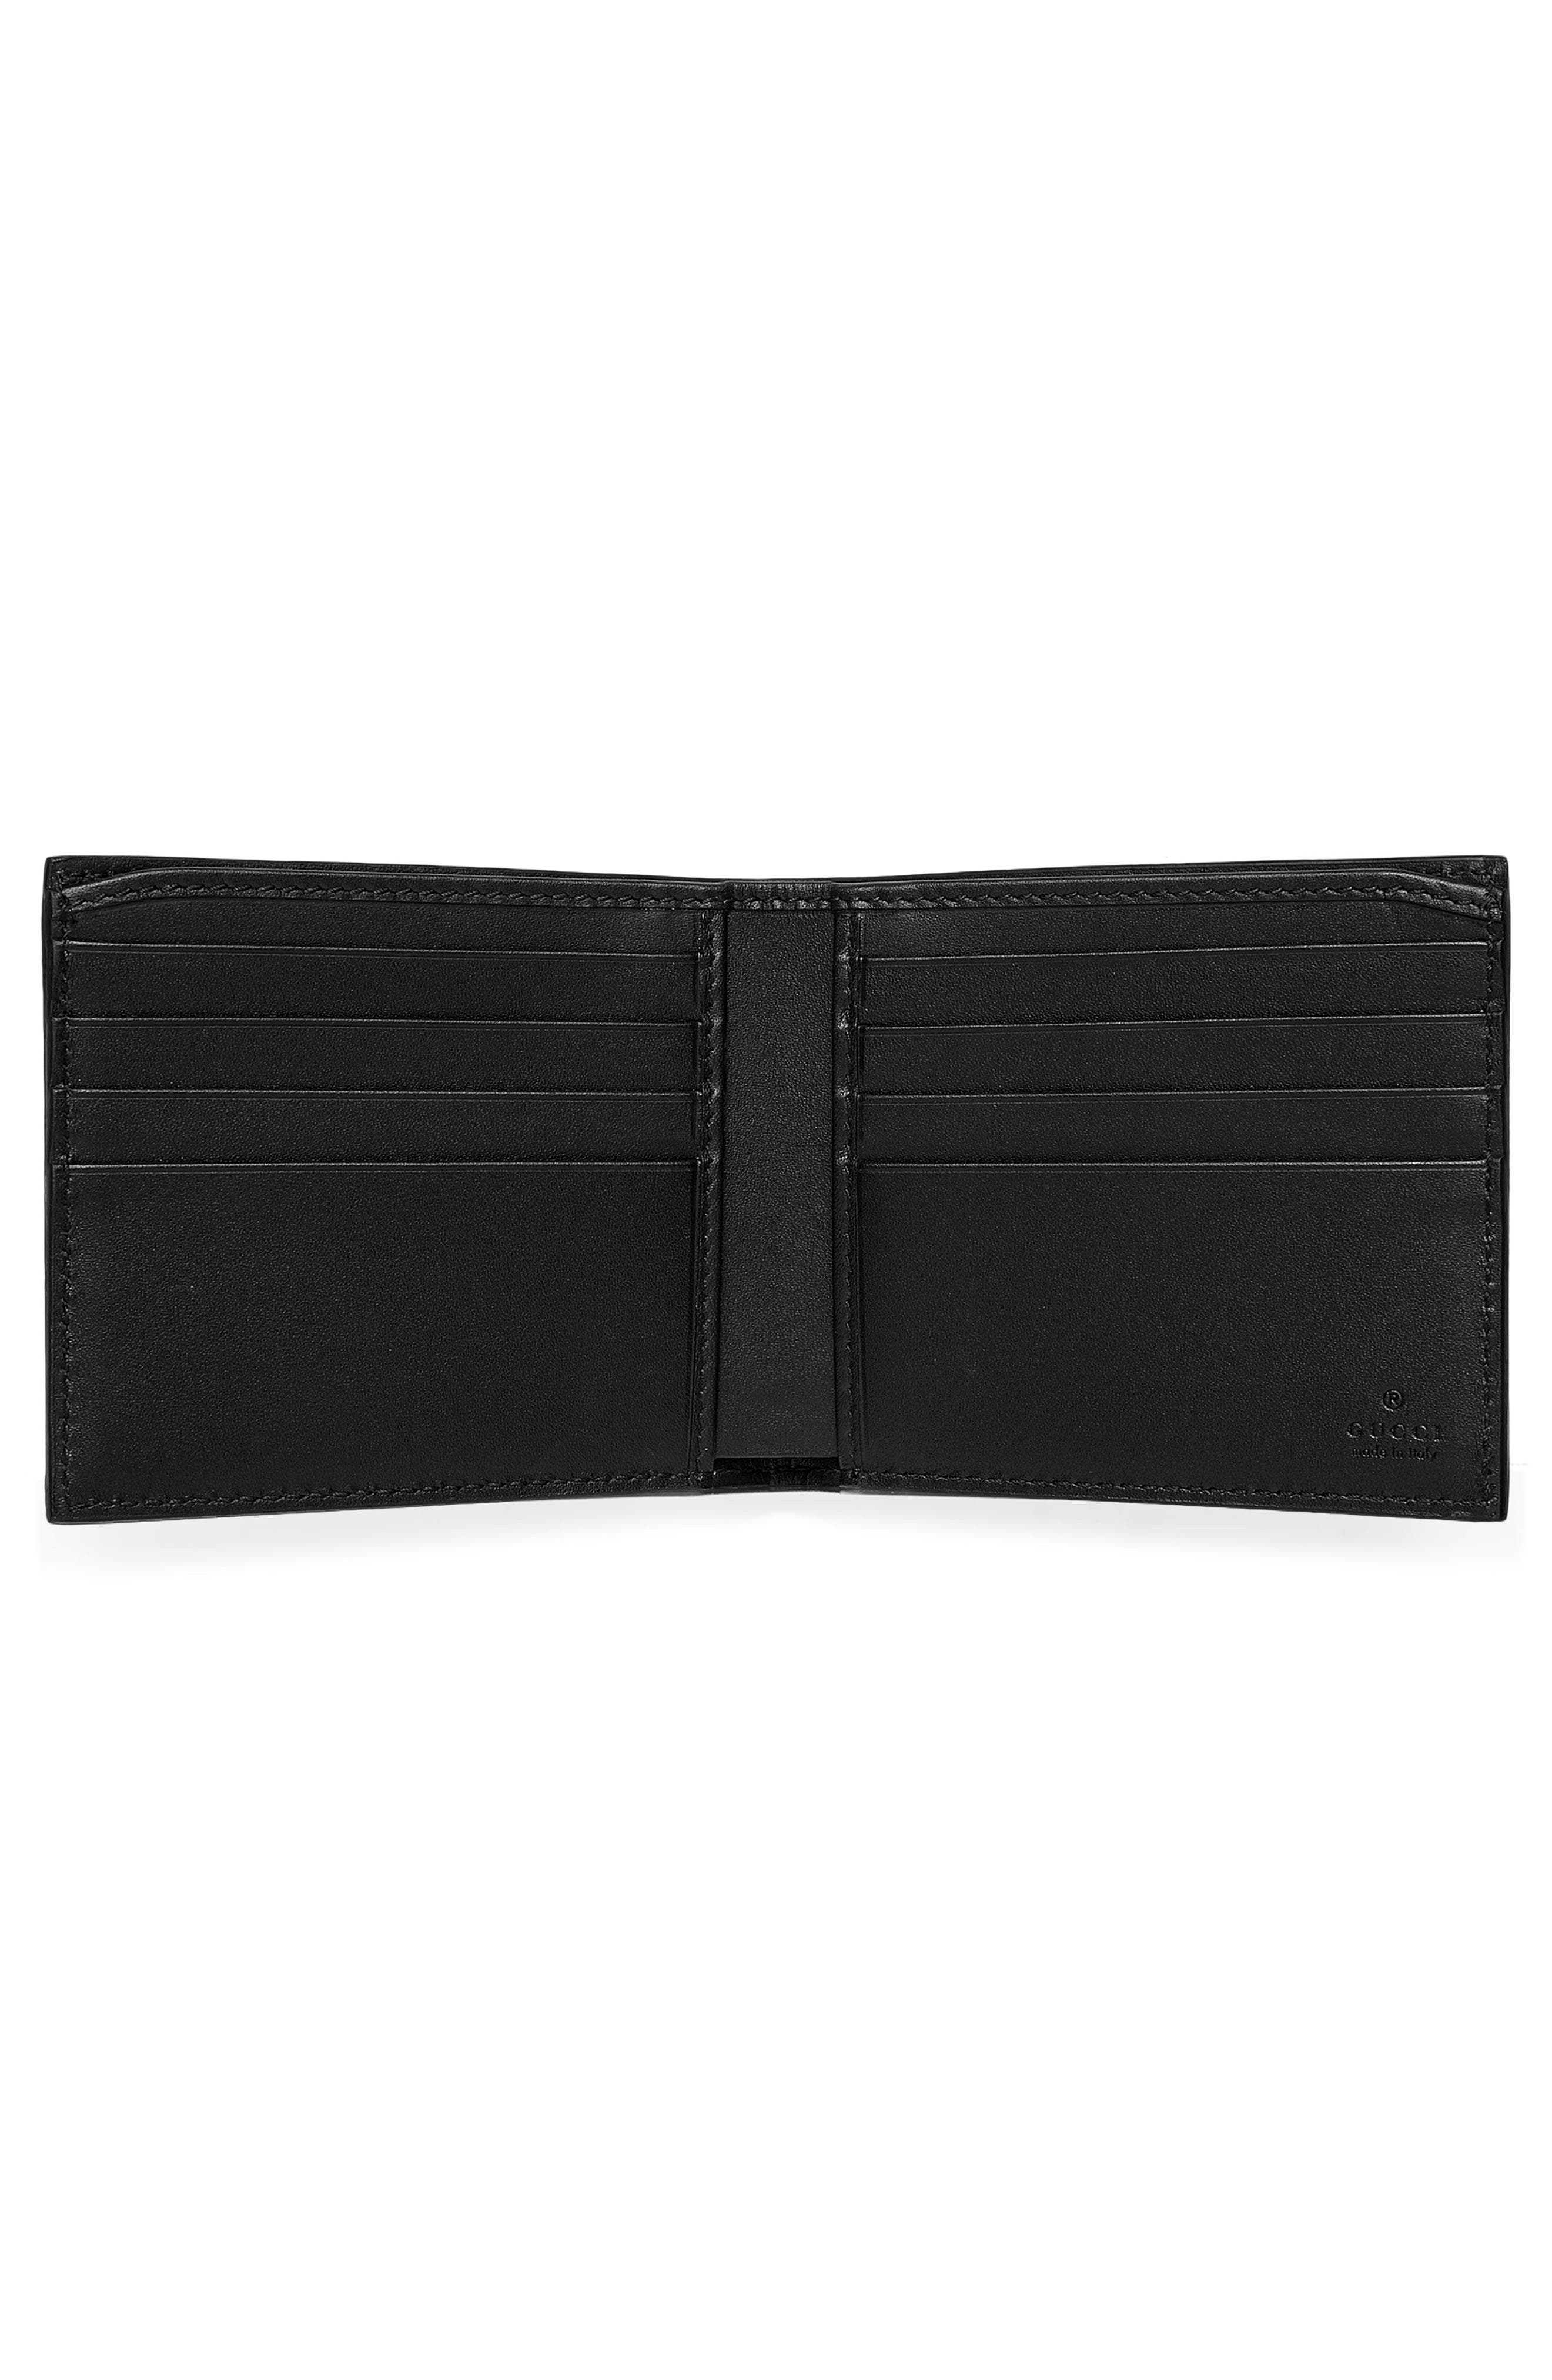 Wolf Bifold Wallet,                             Alternate thumbnail 2, color,                             250